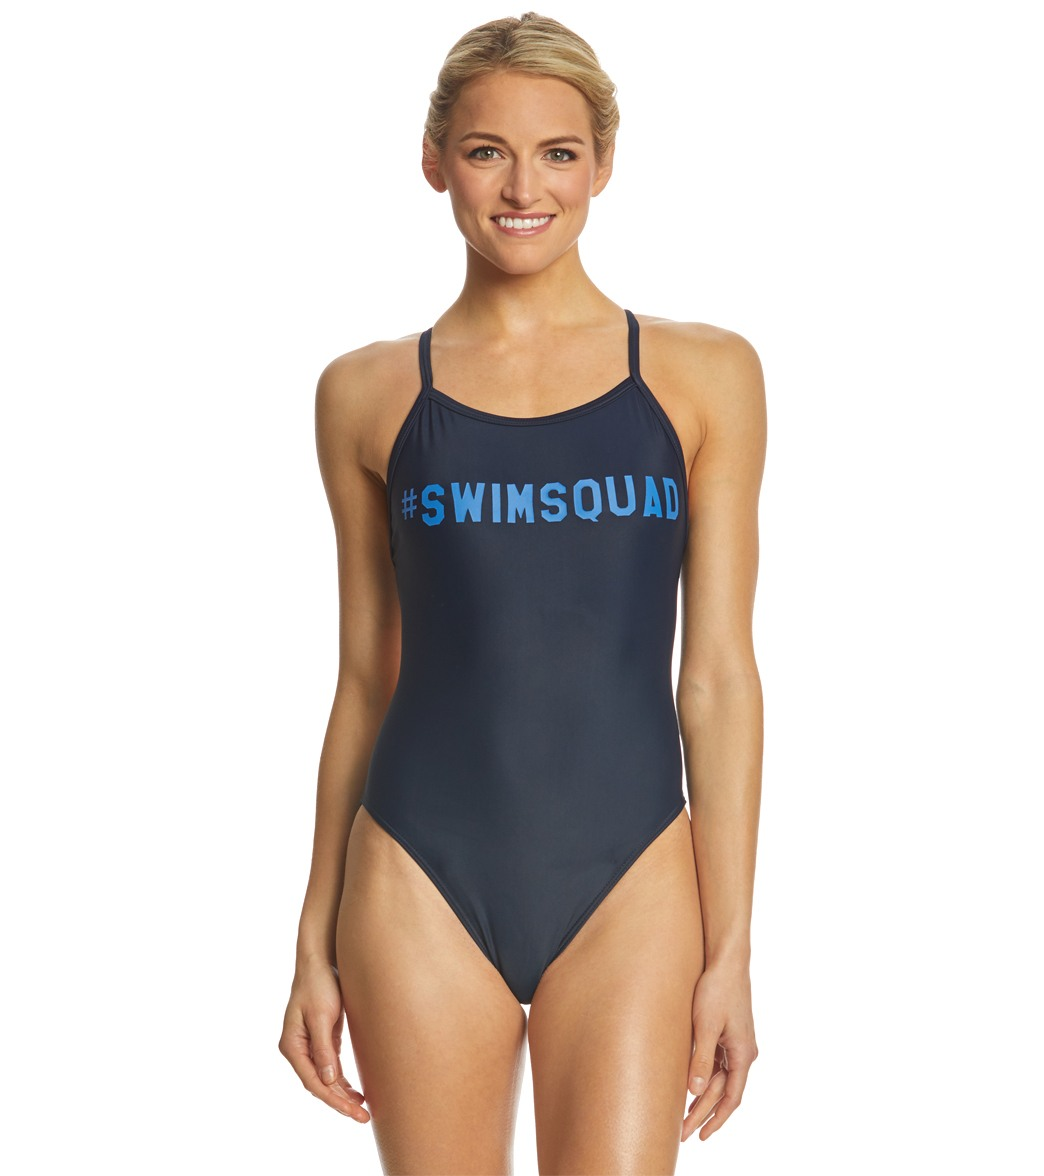 56d3775ff978f iSwim Hashtag Swim Squad Thin Strap One Piece Swimsuit at SwimOutlet.com